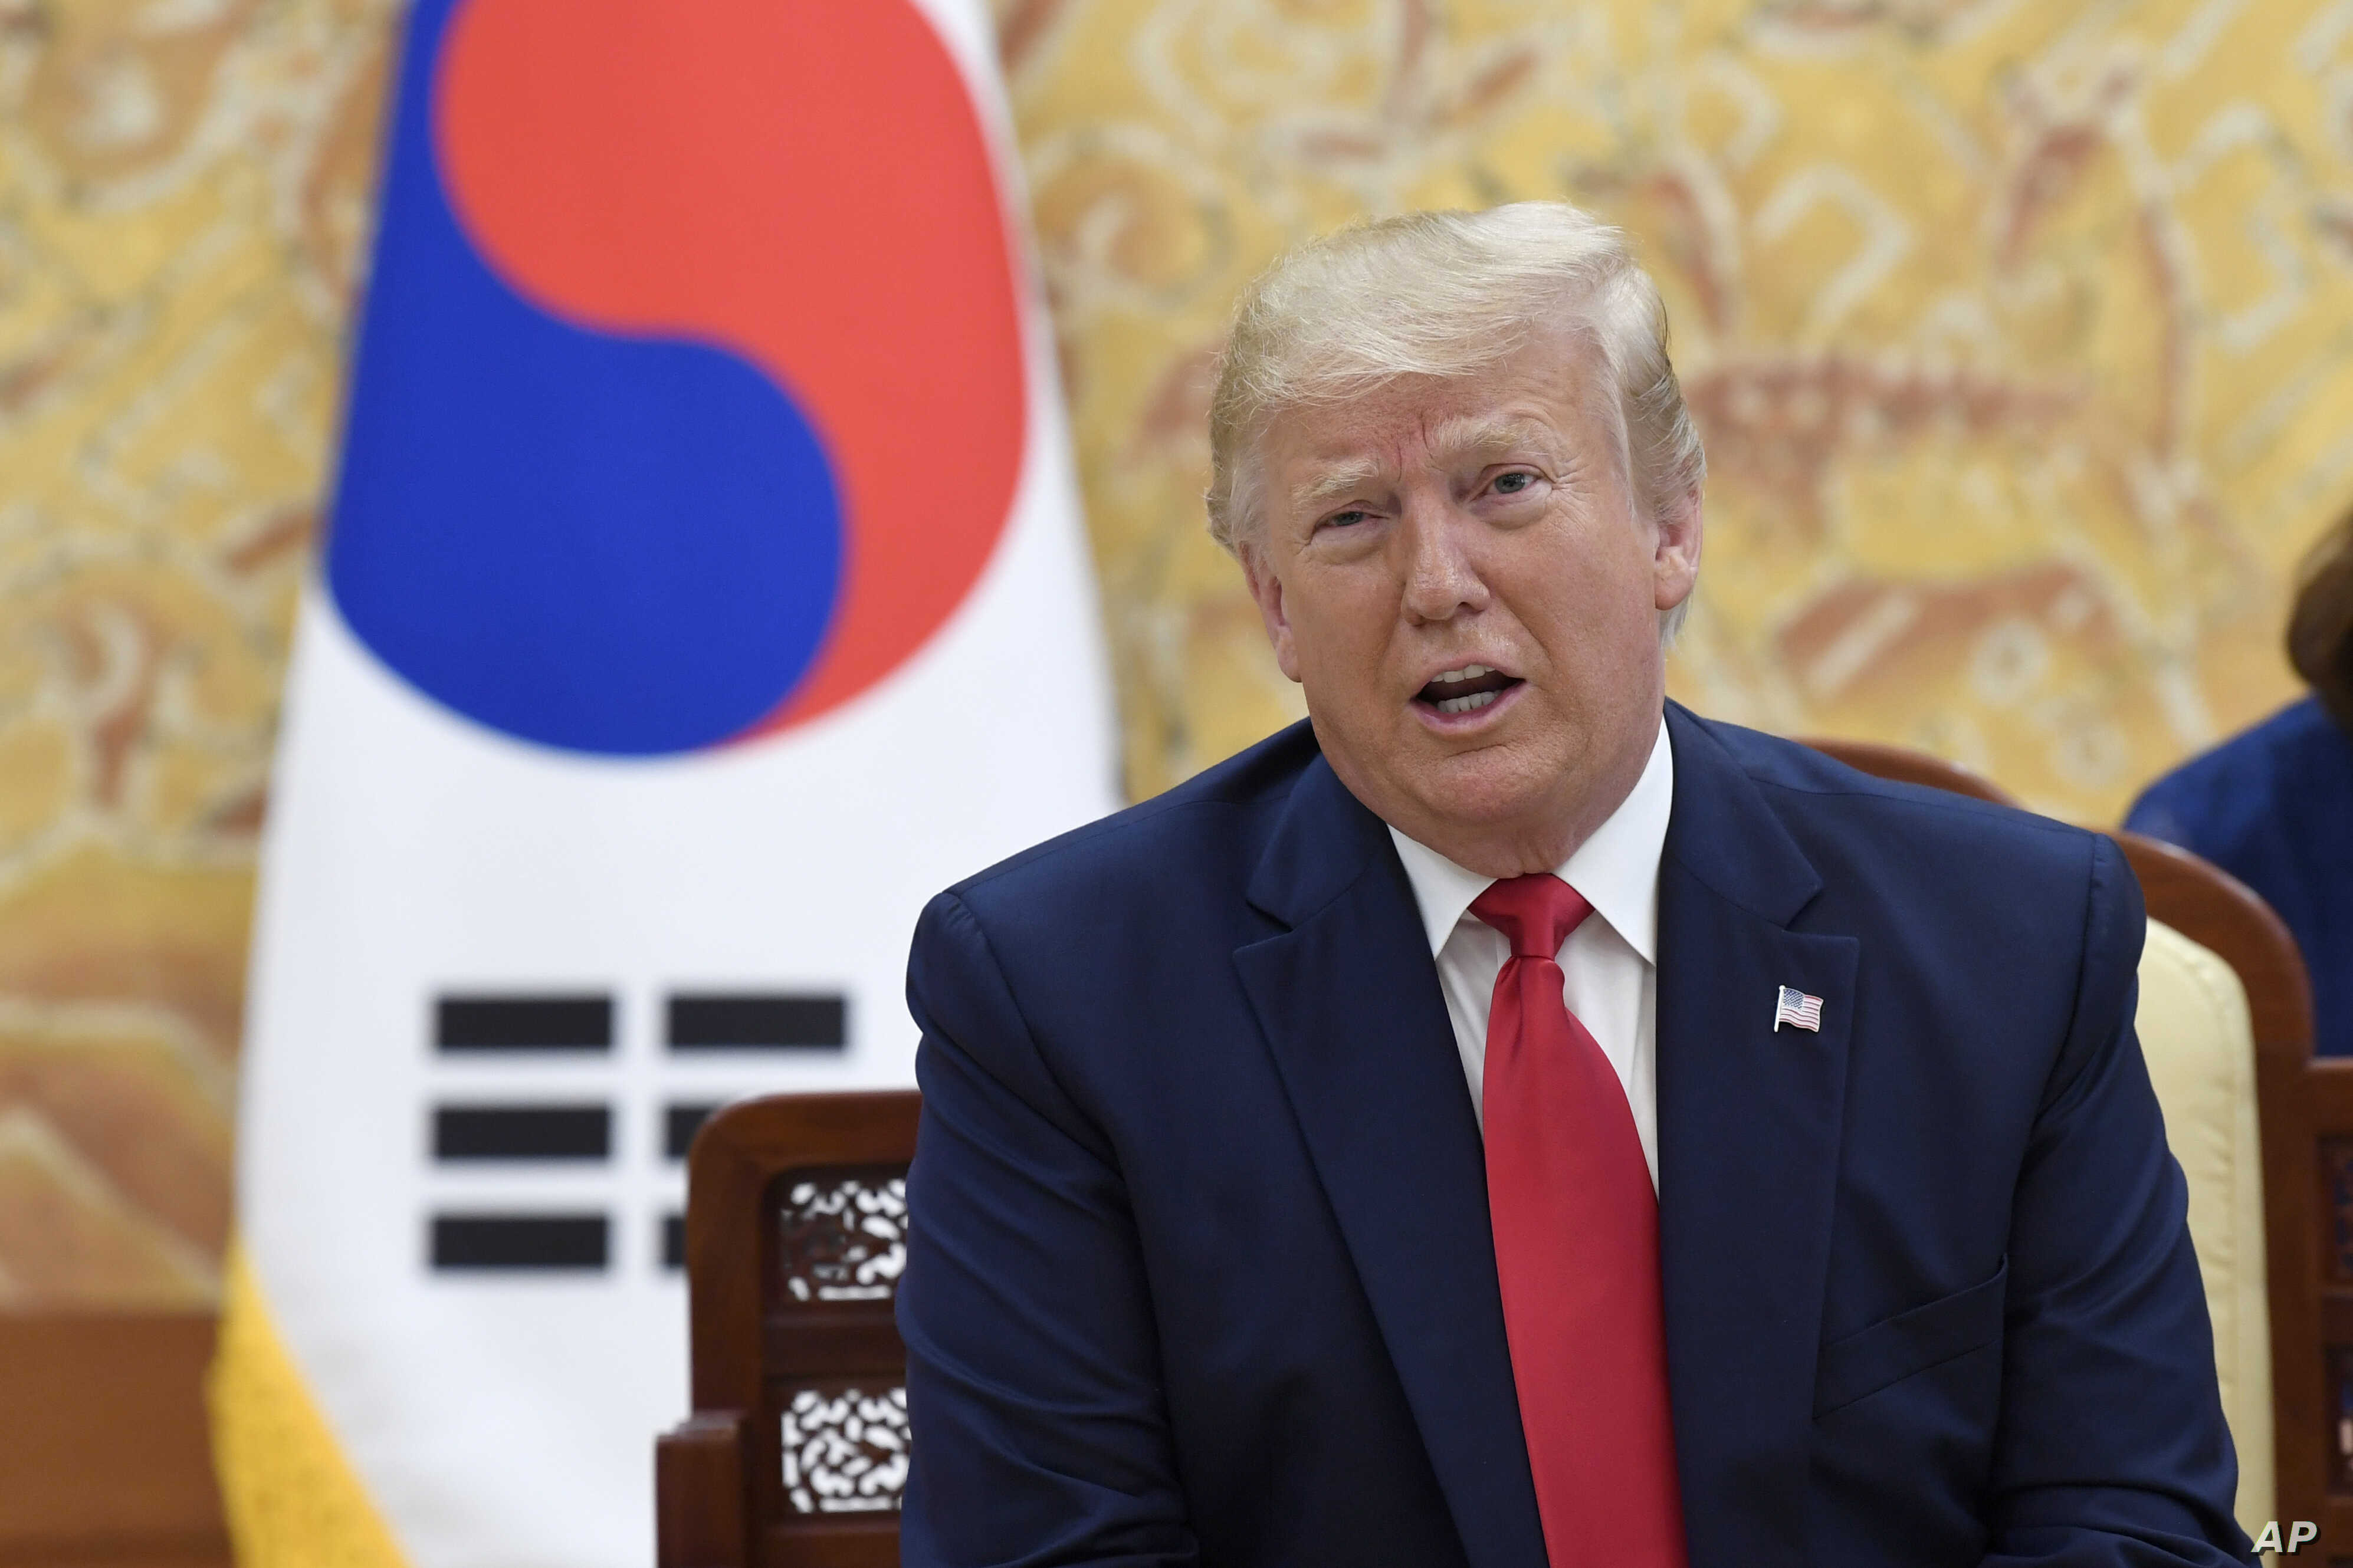 President Donald Trump speaks during a bilateral meeting with South Korean President Moon Jae-in at the Blue House in Seoul, Sunday, June 30, 2019.